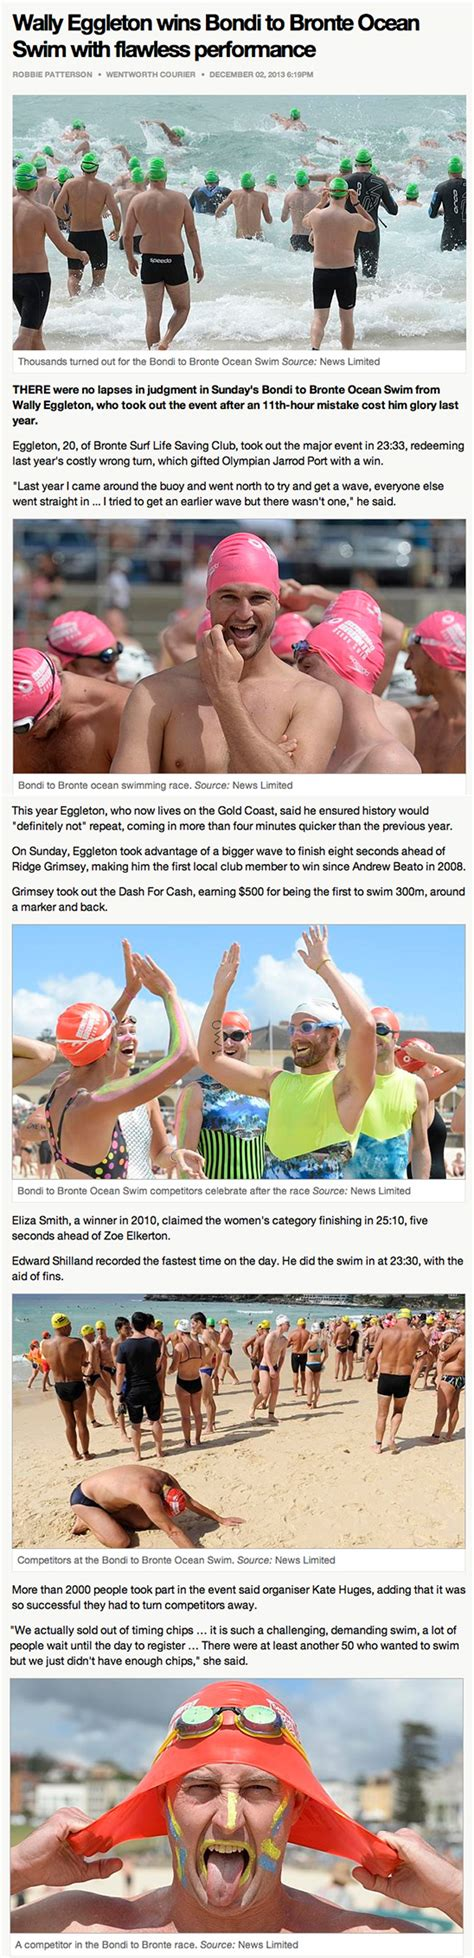 sunday telegraph sports section event media macquarie bondi to bronte ocean swim sydney